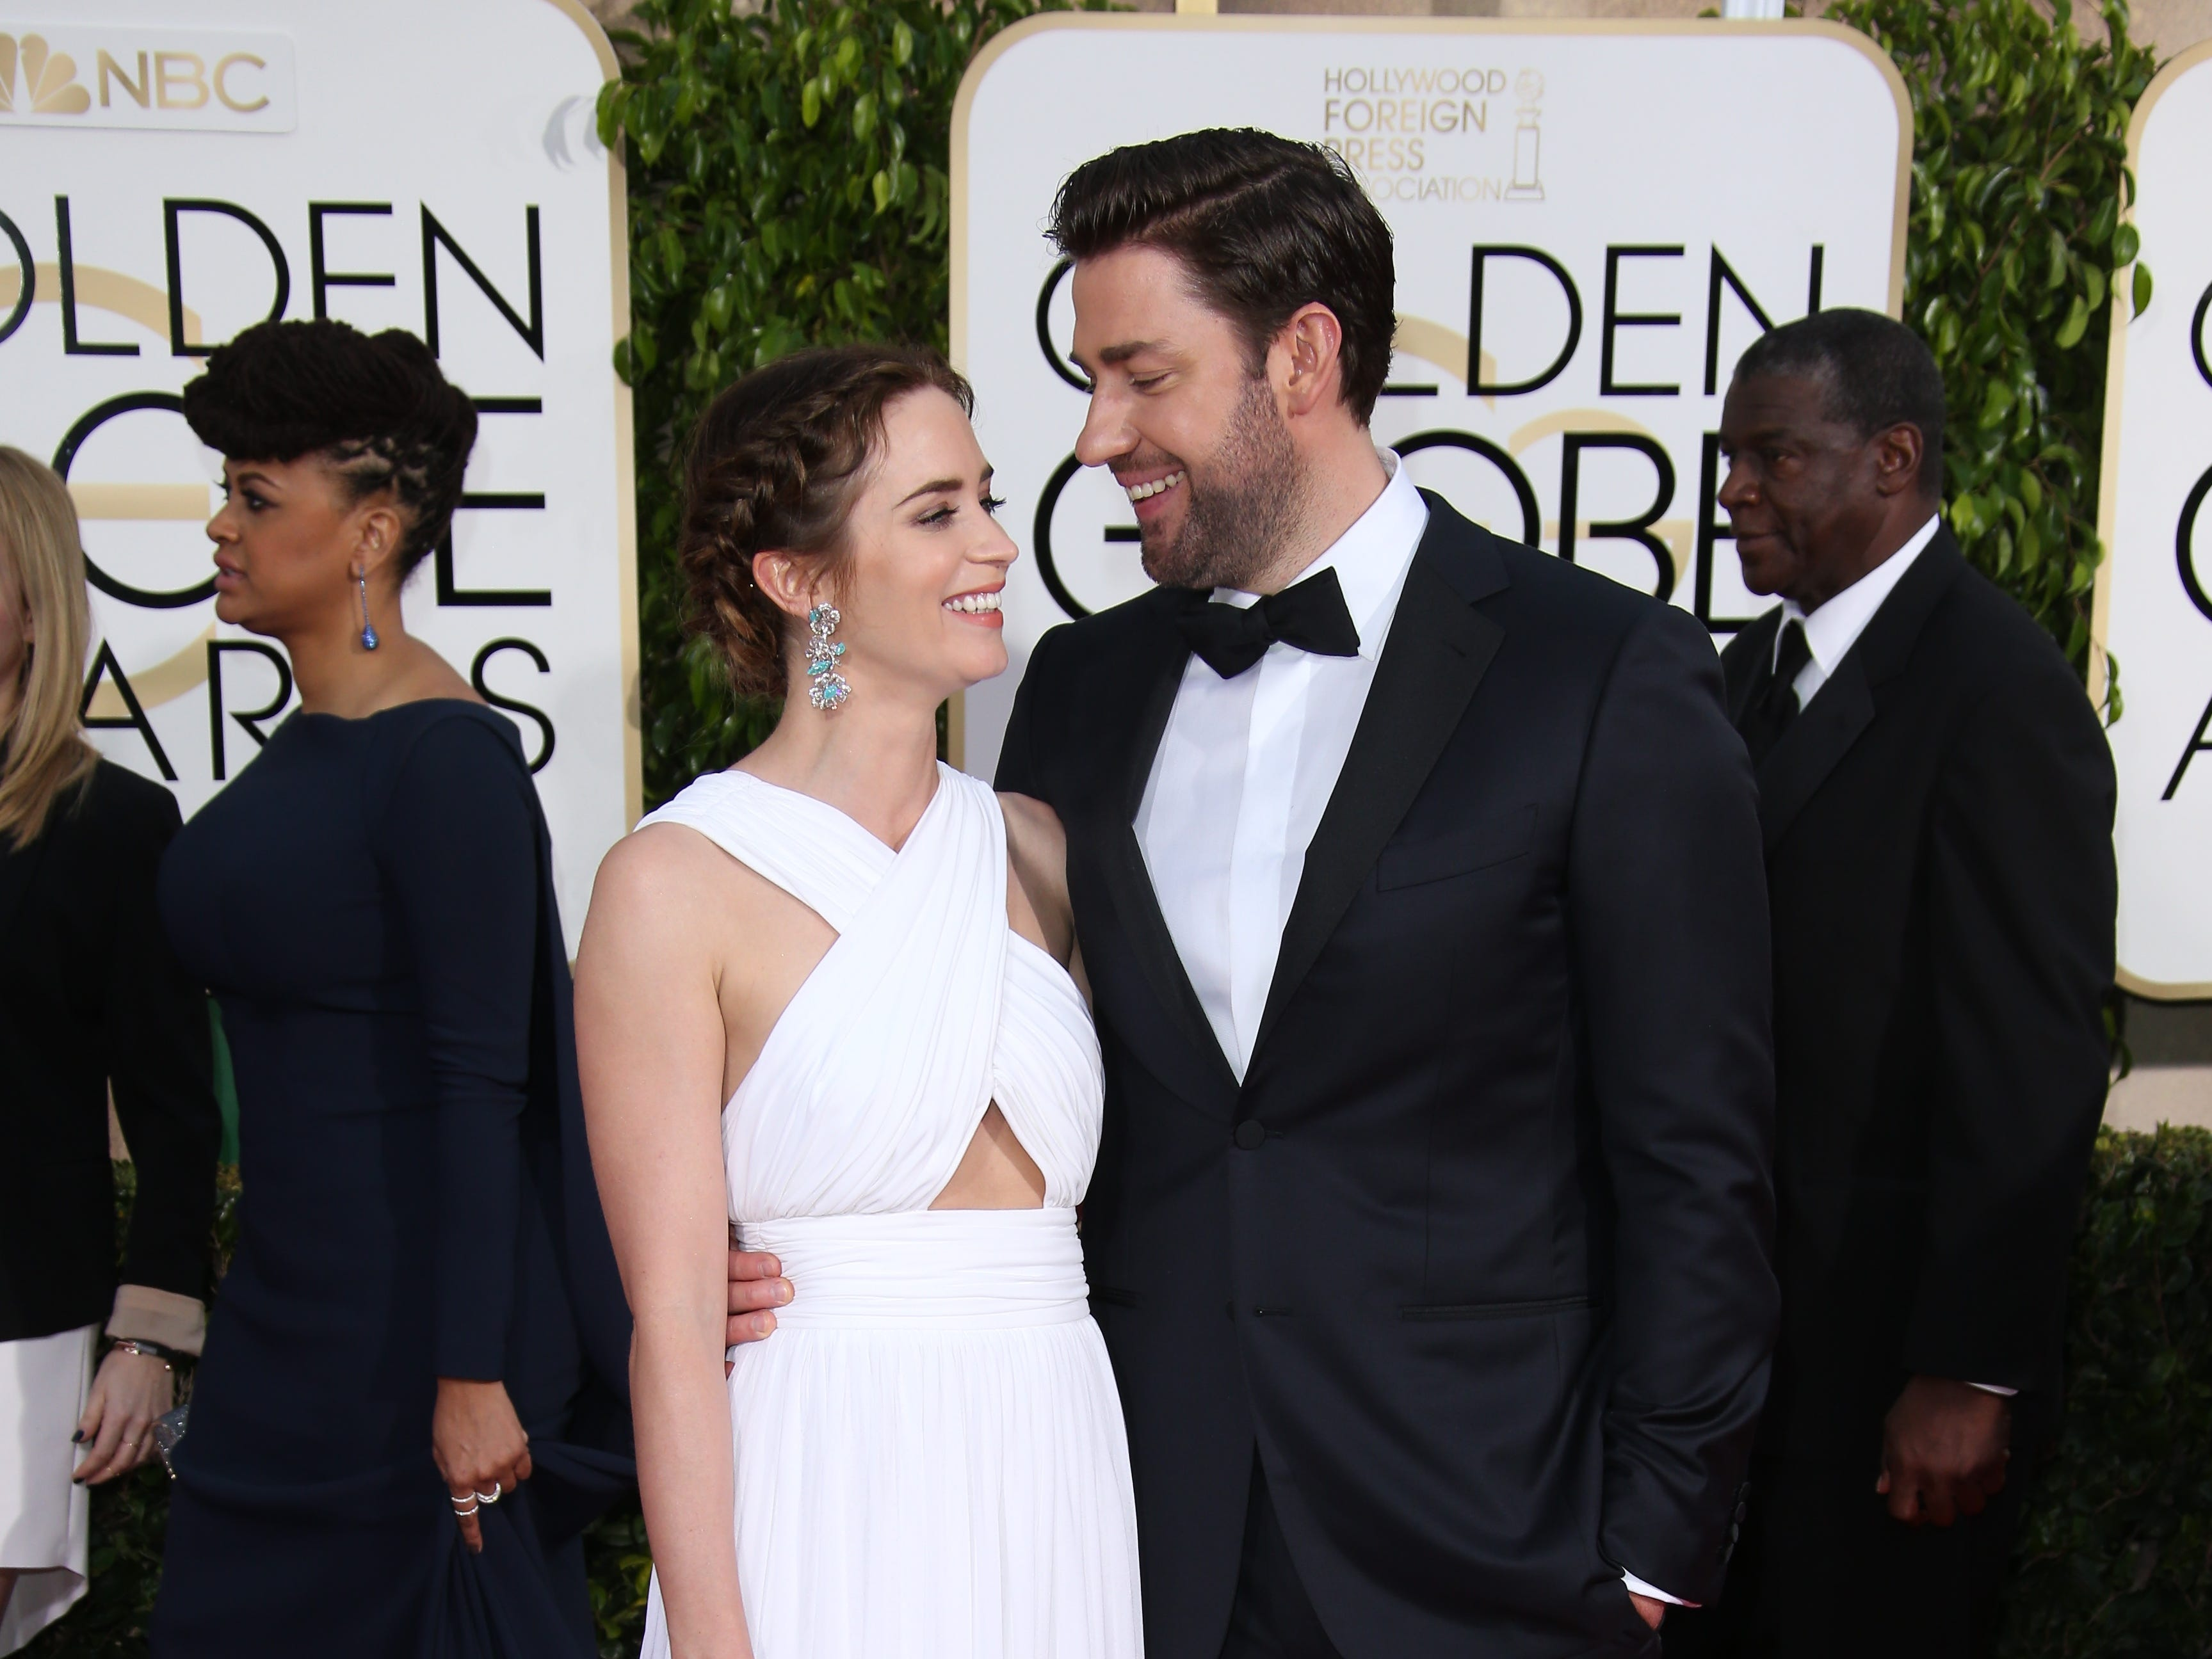 1/11/15 3:58:22 PM -- Los Angeles, CA, U.S.A  -- Emily Blunt and John Krasinski arrive at the 72nd annual Golden Globe Awards --      Photo by Dan MacMedan, USA TODAY contract photographer  ORG XMIT:  DM 132339 2015 GOLDEN GLOB 1/5/2015 [Via MerlinFTP Drop]